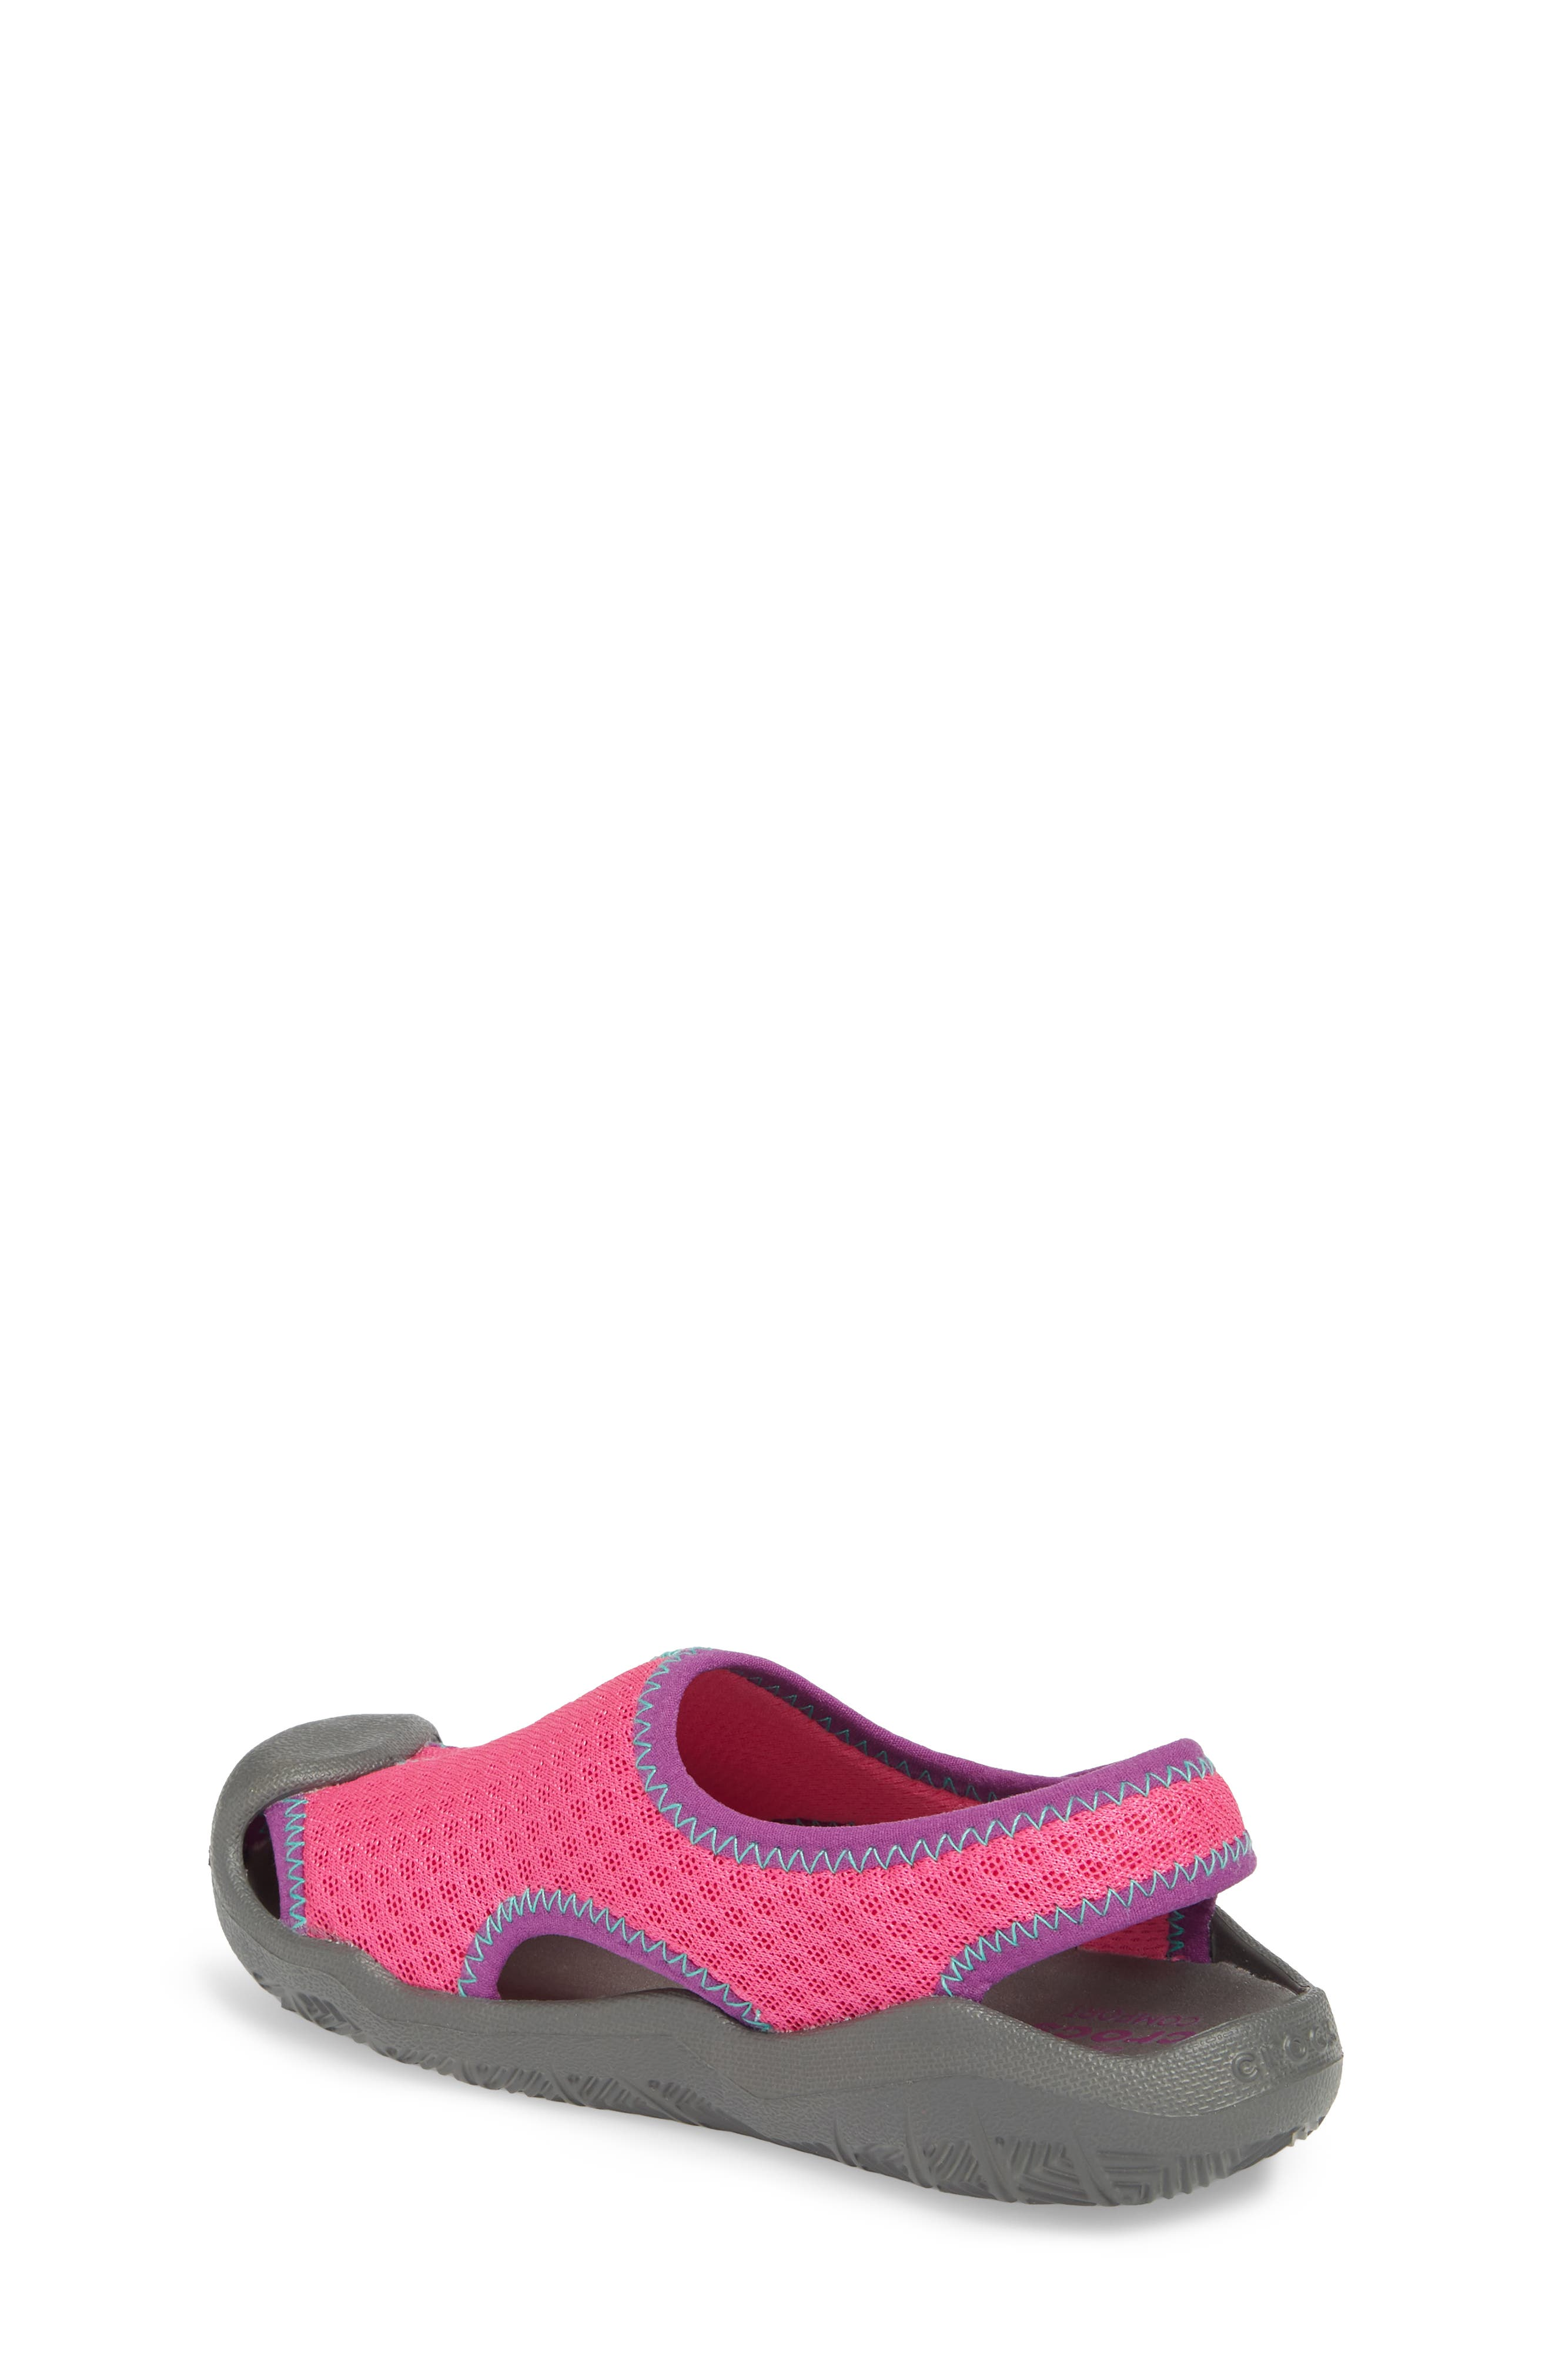 Swiftwater Sandal,                             Alternate thumbnail 2, color,                             Pink